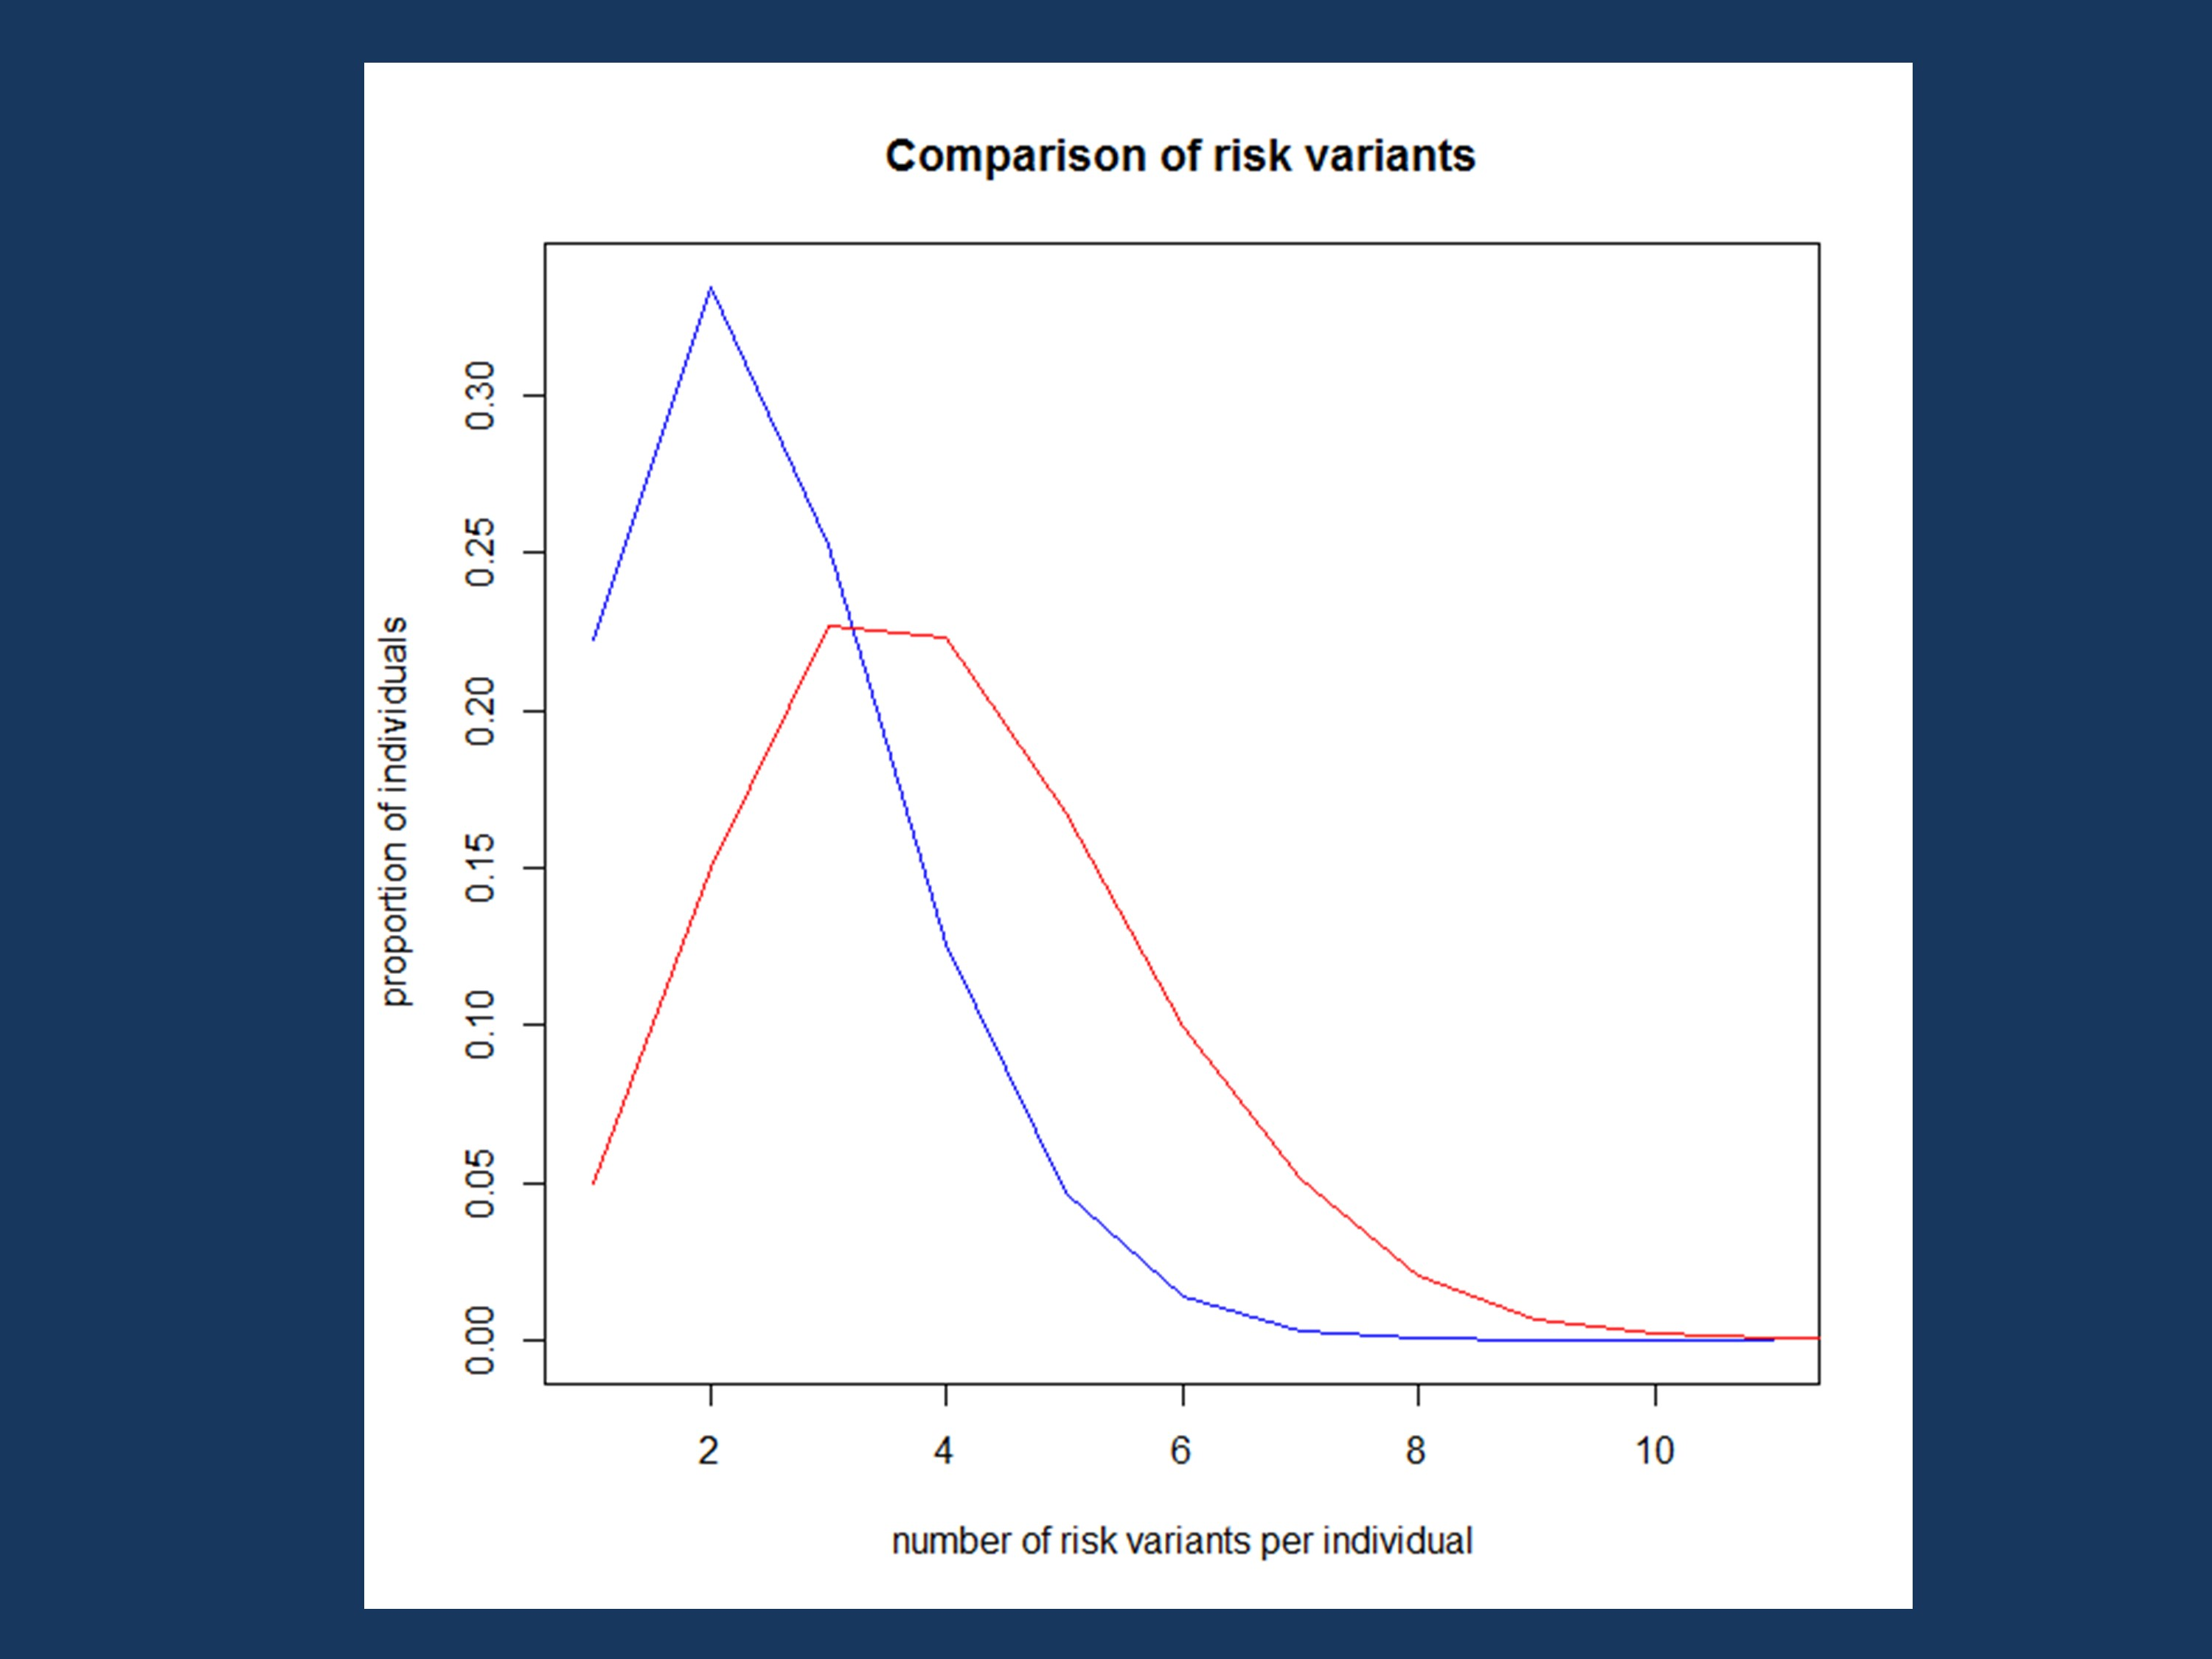 Figure 3. The number of risk variants per individual on Rare Variant Island, plotted as proportion of affected and unaffected individuals. You see a difference between affected (red) and unaffected individuals (blue), but the distinction is not as clear as you would expect.